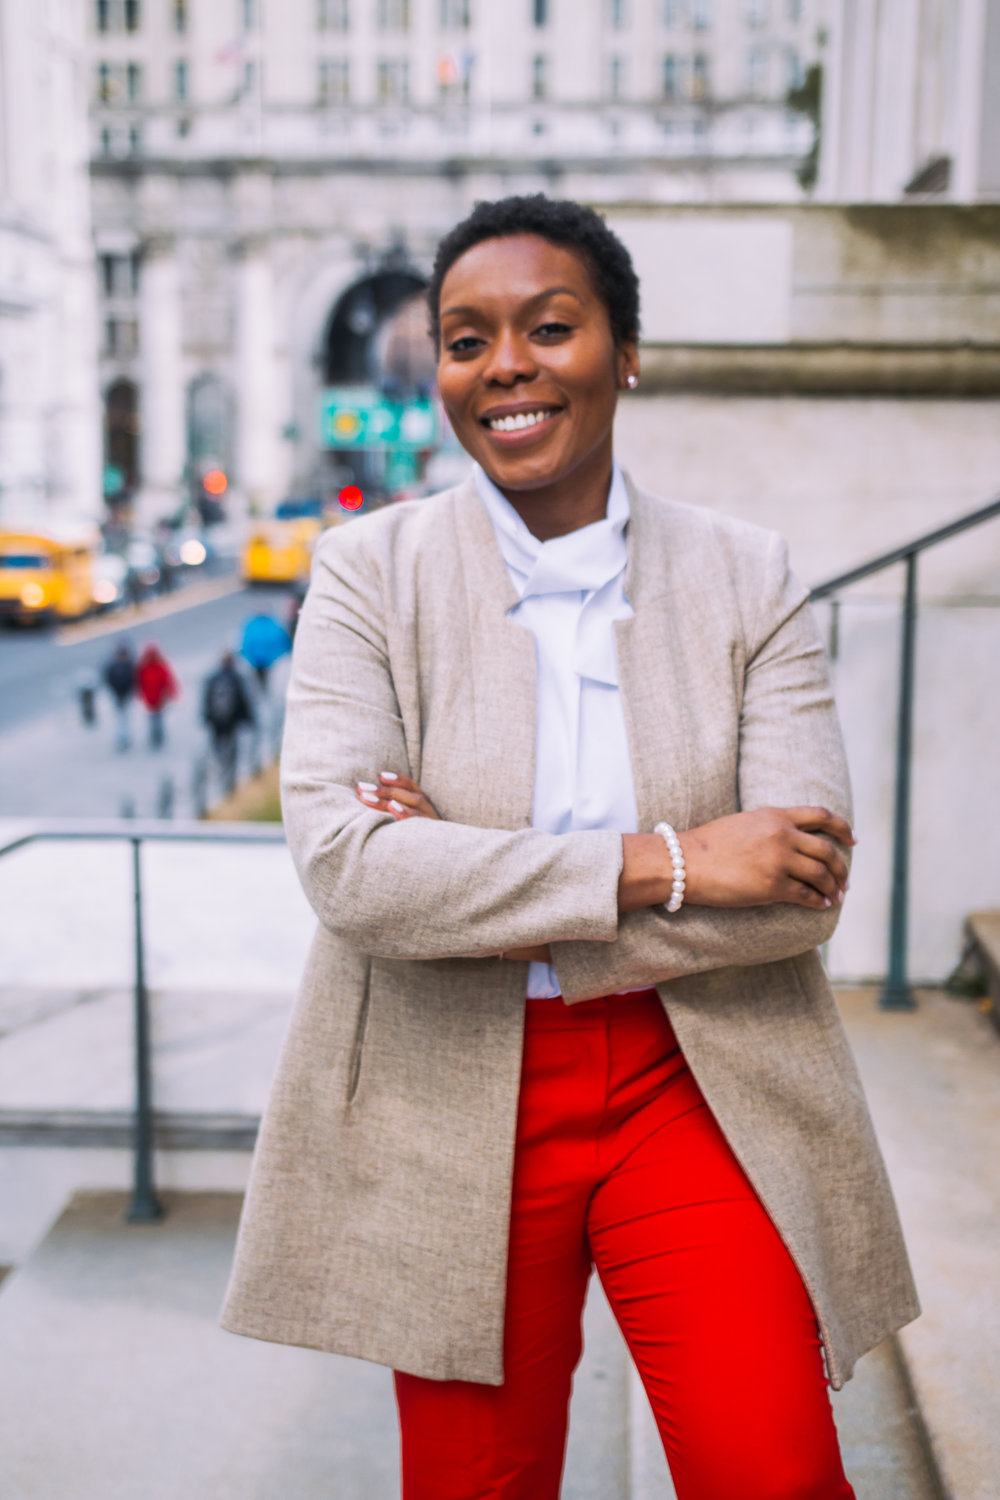 Who is Ify IKE? - Ifeoma Ike—Ify, for short—is a first-generation, Nigerian-American activist, artist and attorney whose entire career has been dedicated to empowering marginalized communities and creating data-informed strategies to reduce inequity. Ify is a co-founding Principal of social impact firm, Think Rubix, a professor at Lehman College, and board member of the Women's Prison Association, as well a Junior Board member of the Nigerian Healthcare Foundation.Read More